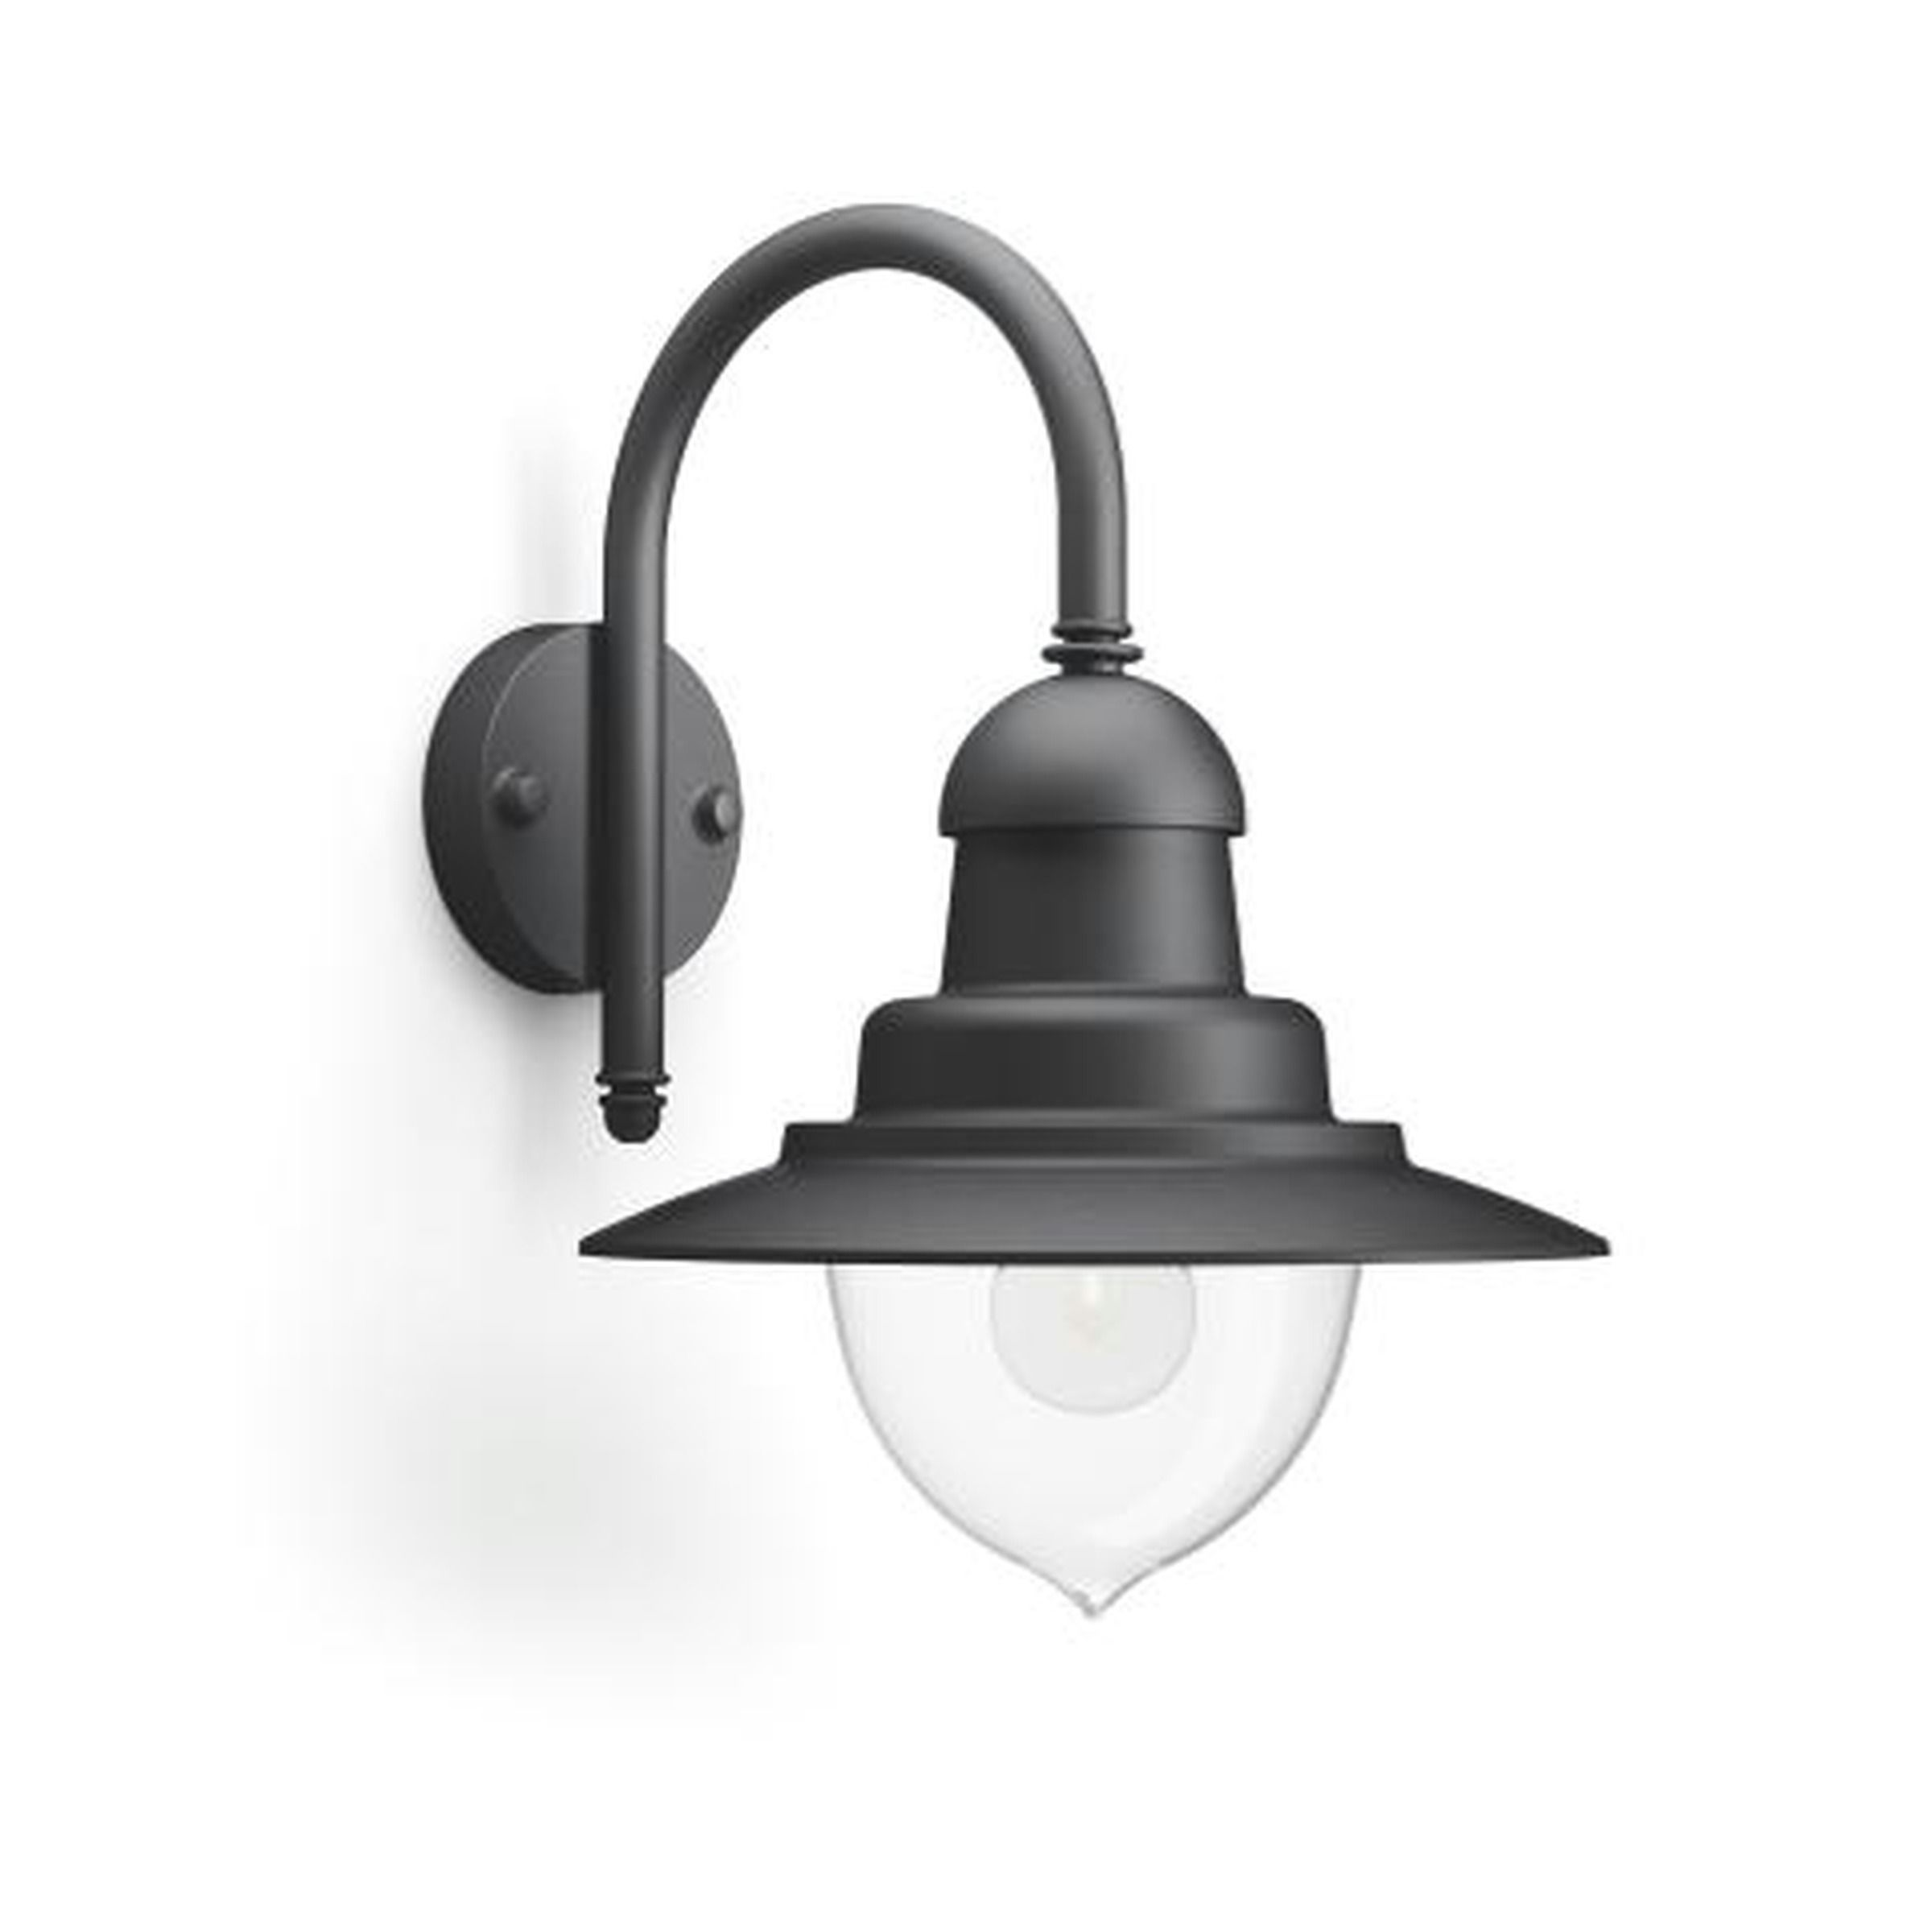 Philips Buitenlamp Philips Buitenlamp Raindrop Zwart In 2019 Products Wall